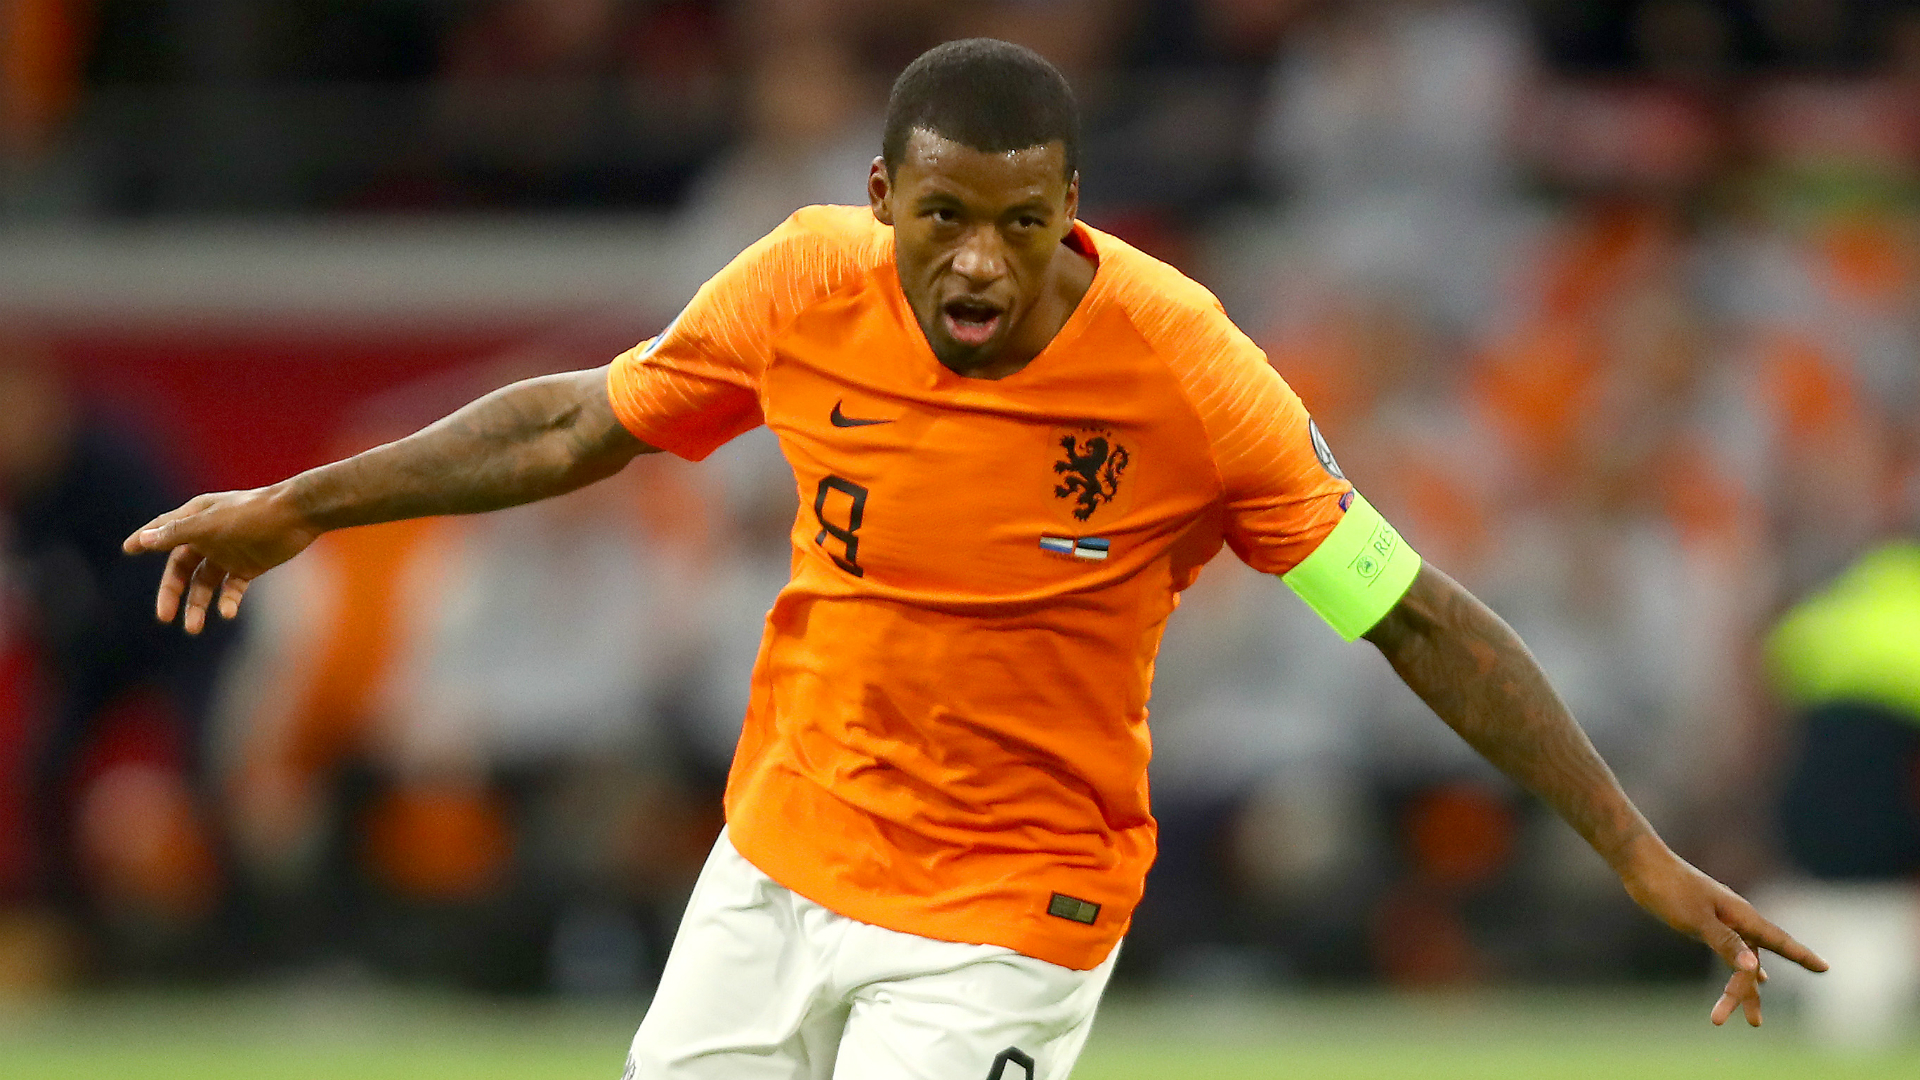 Netherlands 5-0 Estonia: Wijnaldum hat-trick helps Koeman's men bounce back